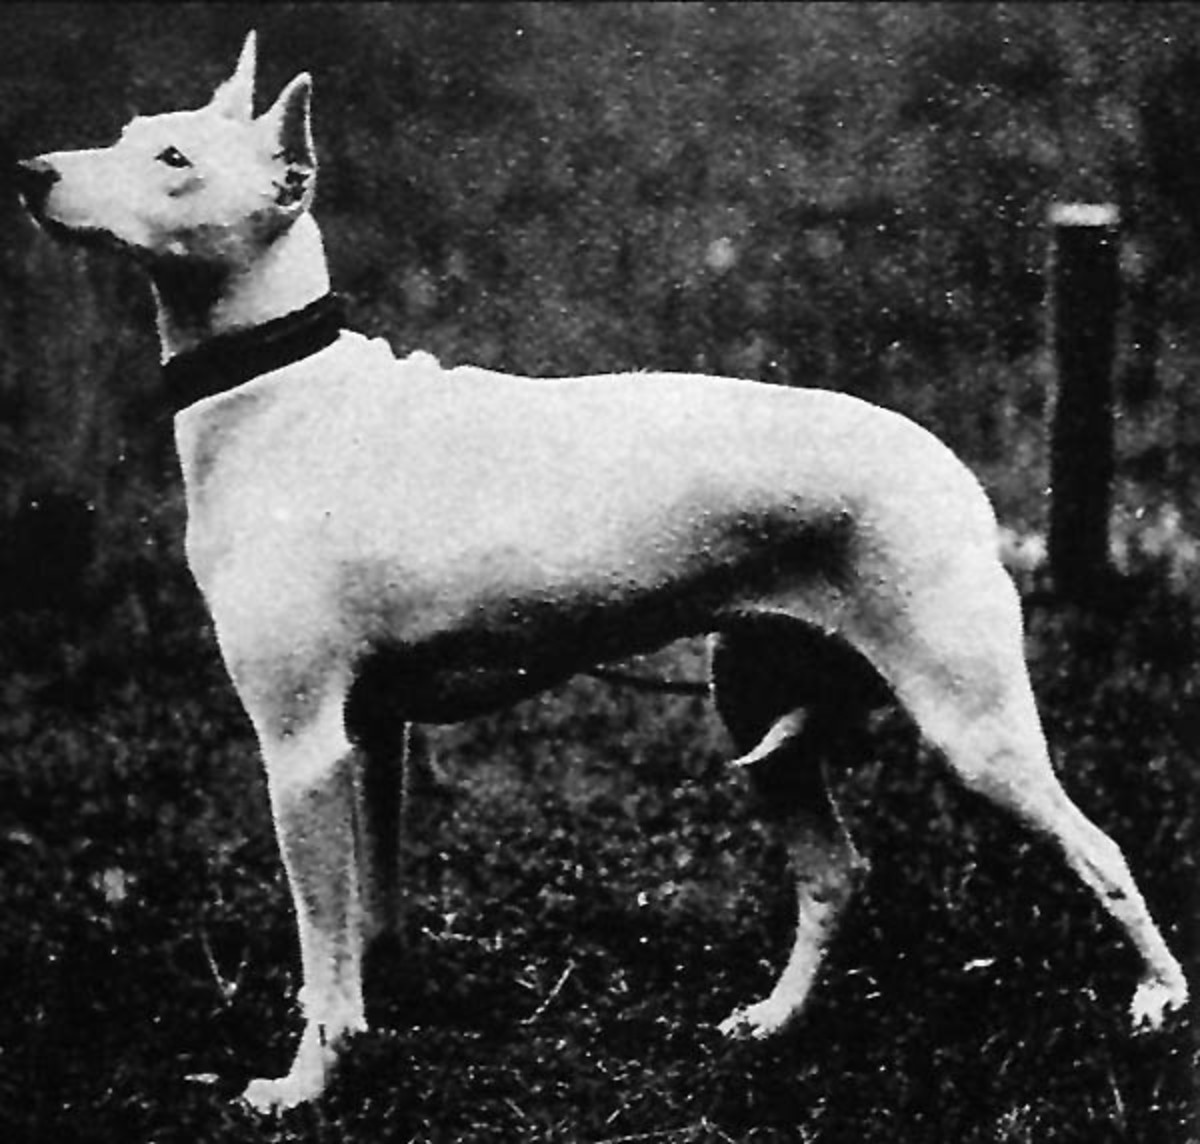 A beautiful example of the Bull Terrier's extinct forerunner, already showing the white coat, muscled body and erect ears.